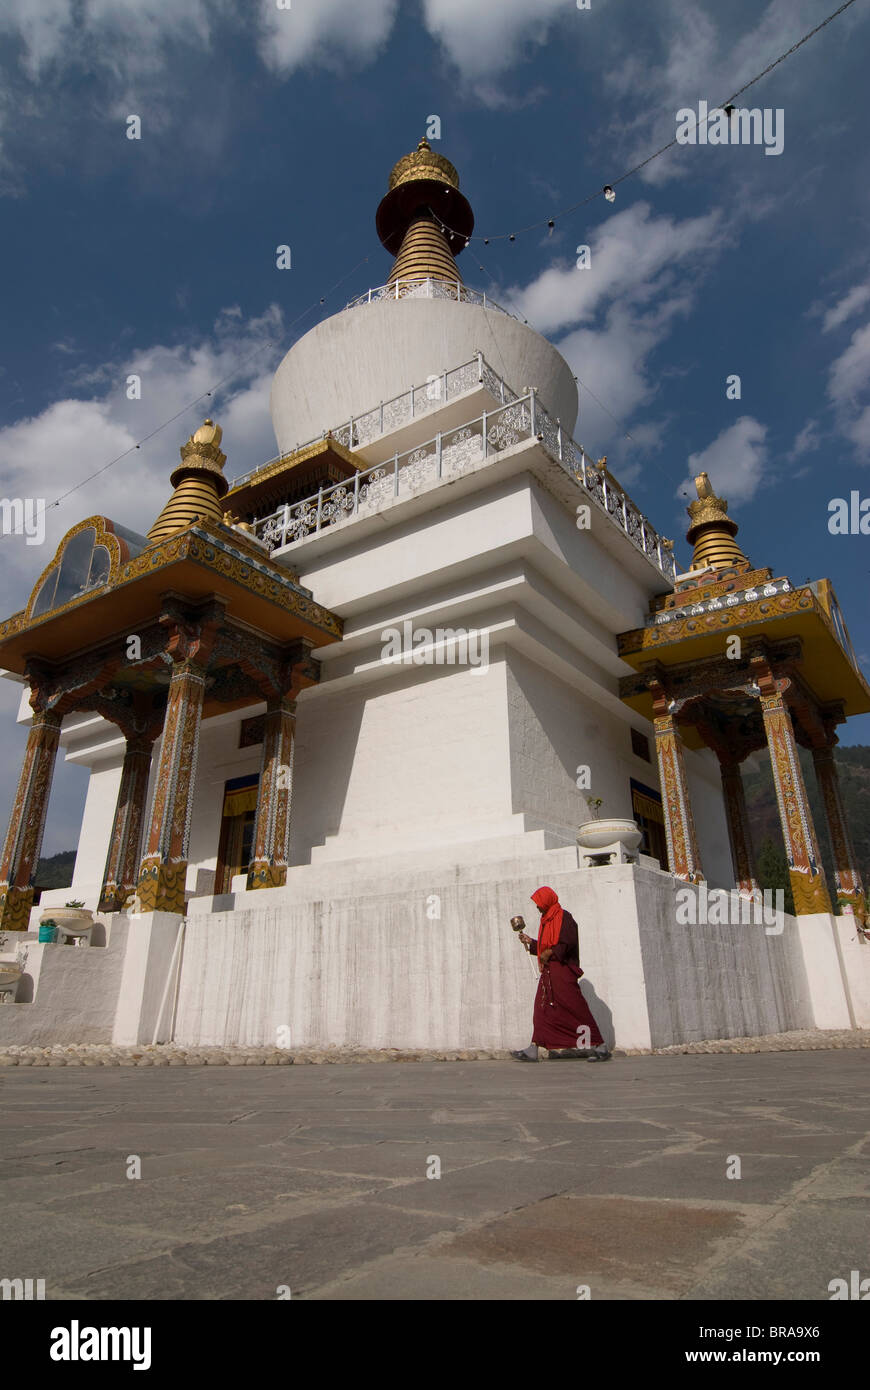 Pilgrim circling a white Stupa with prayer wheel in hand, Thimpu, Bhutan, Asia - Stock Image